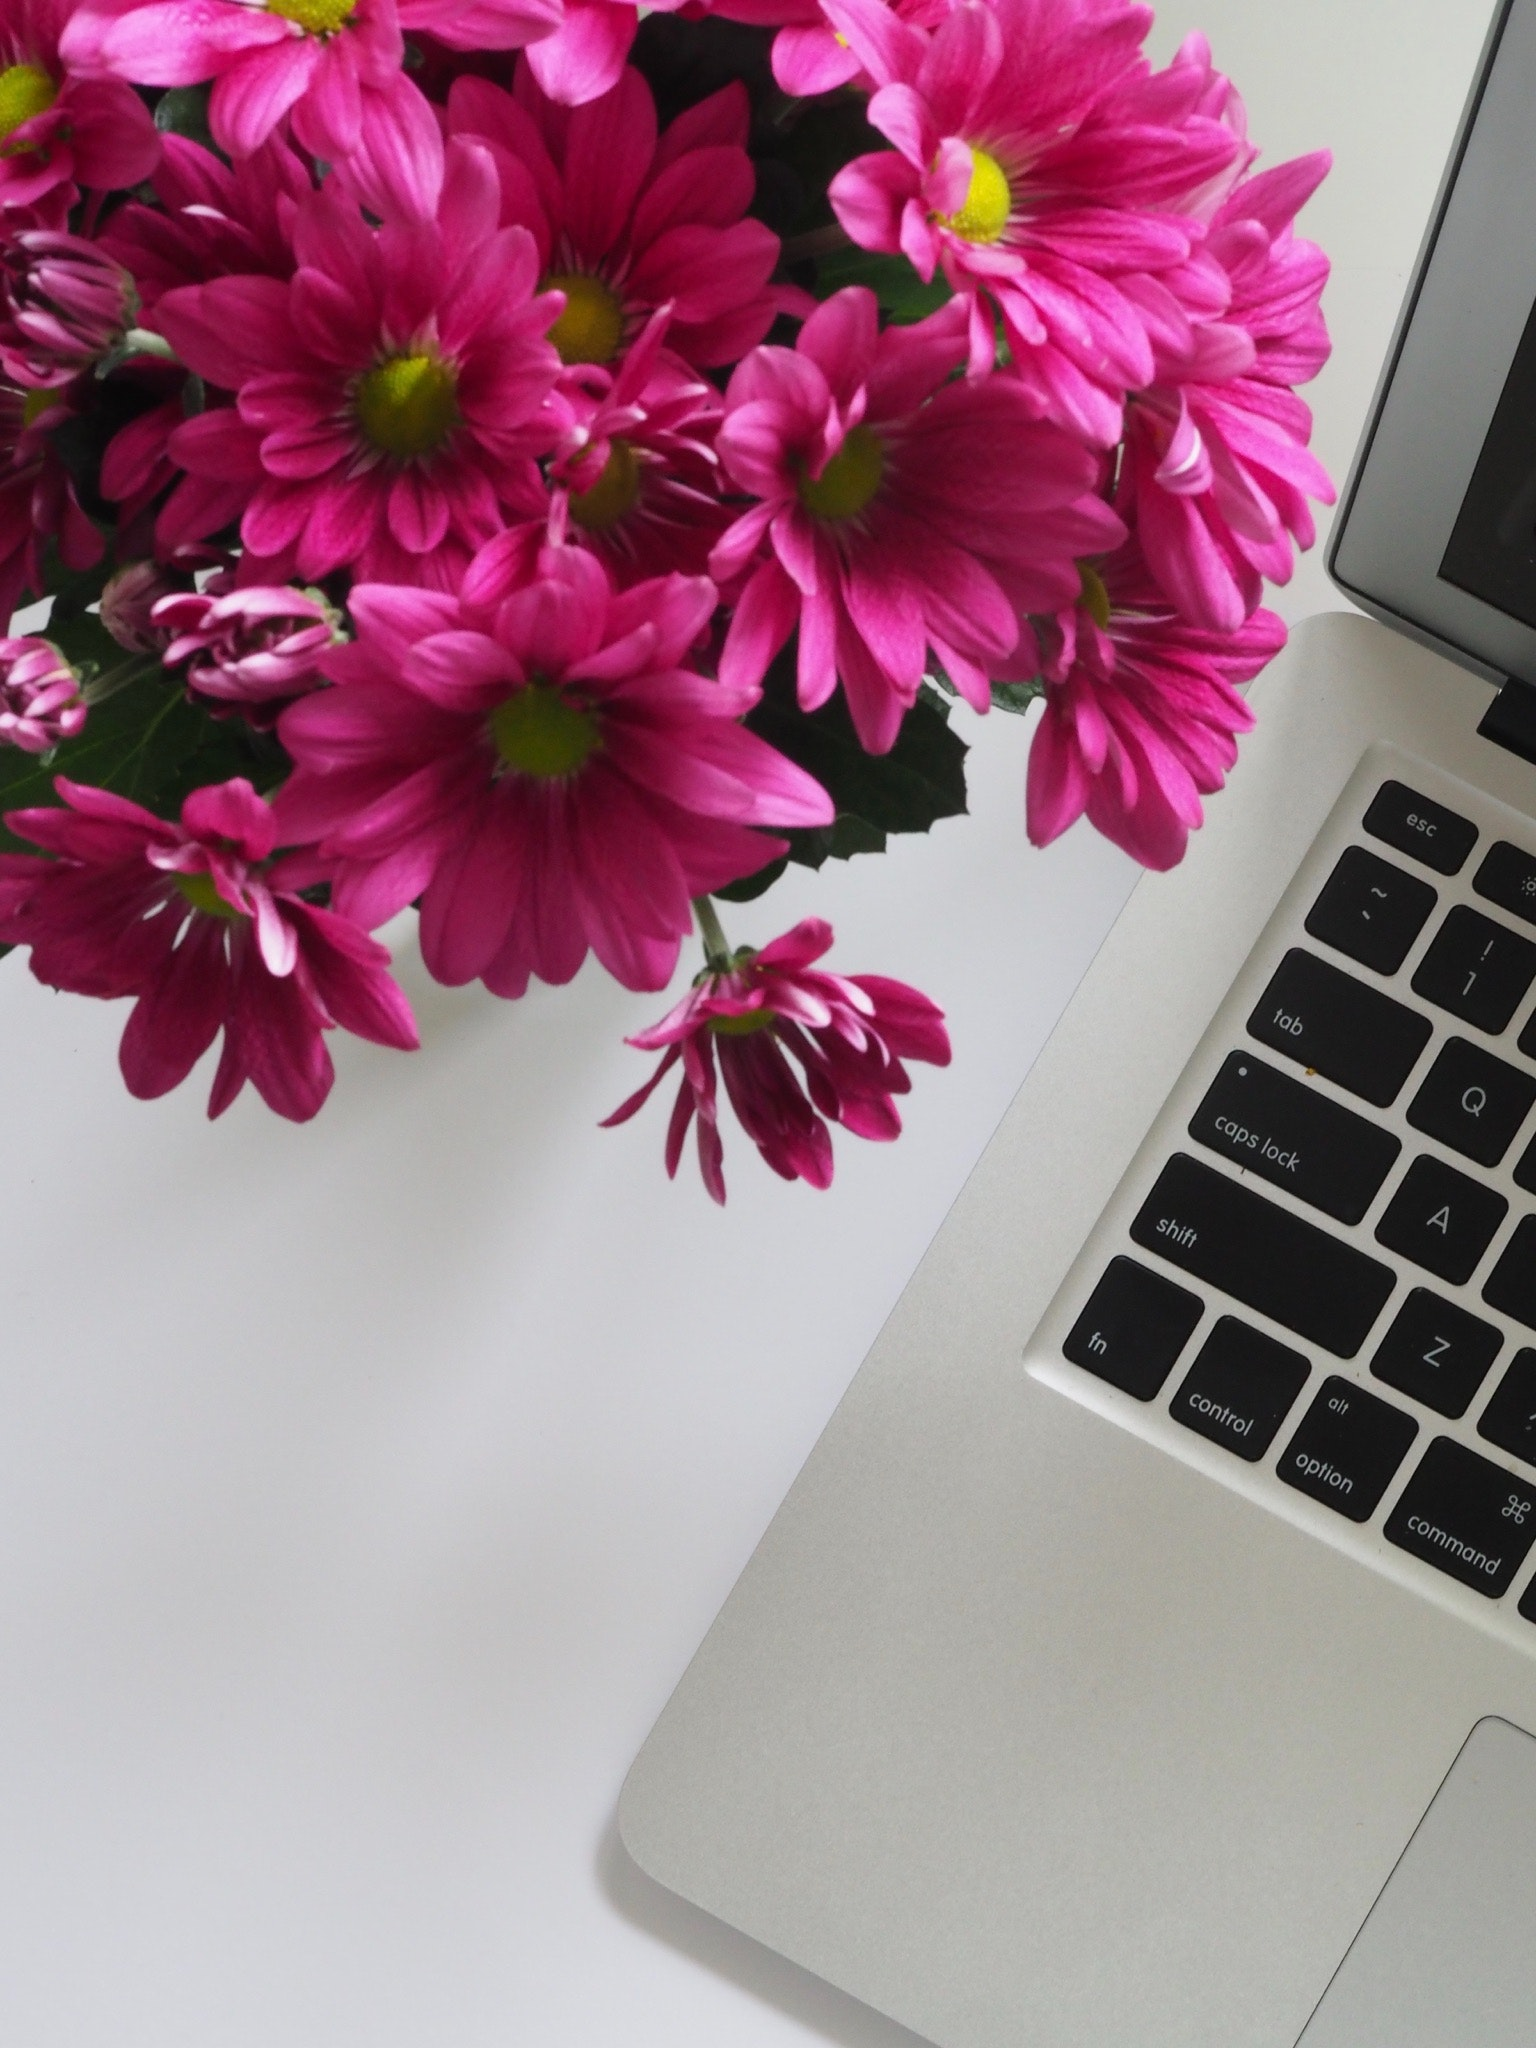 Closeup Photo of Pink Petaled Flowers, Laptop, Keyboard, From above, Office, HQ Photo